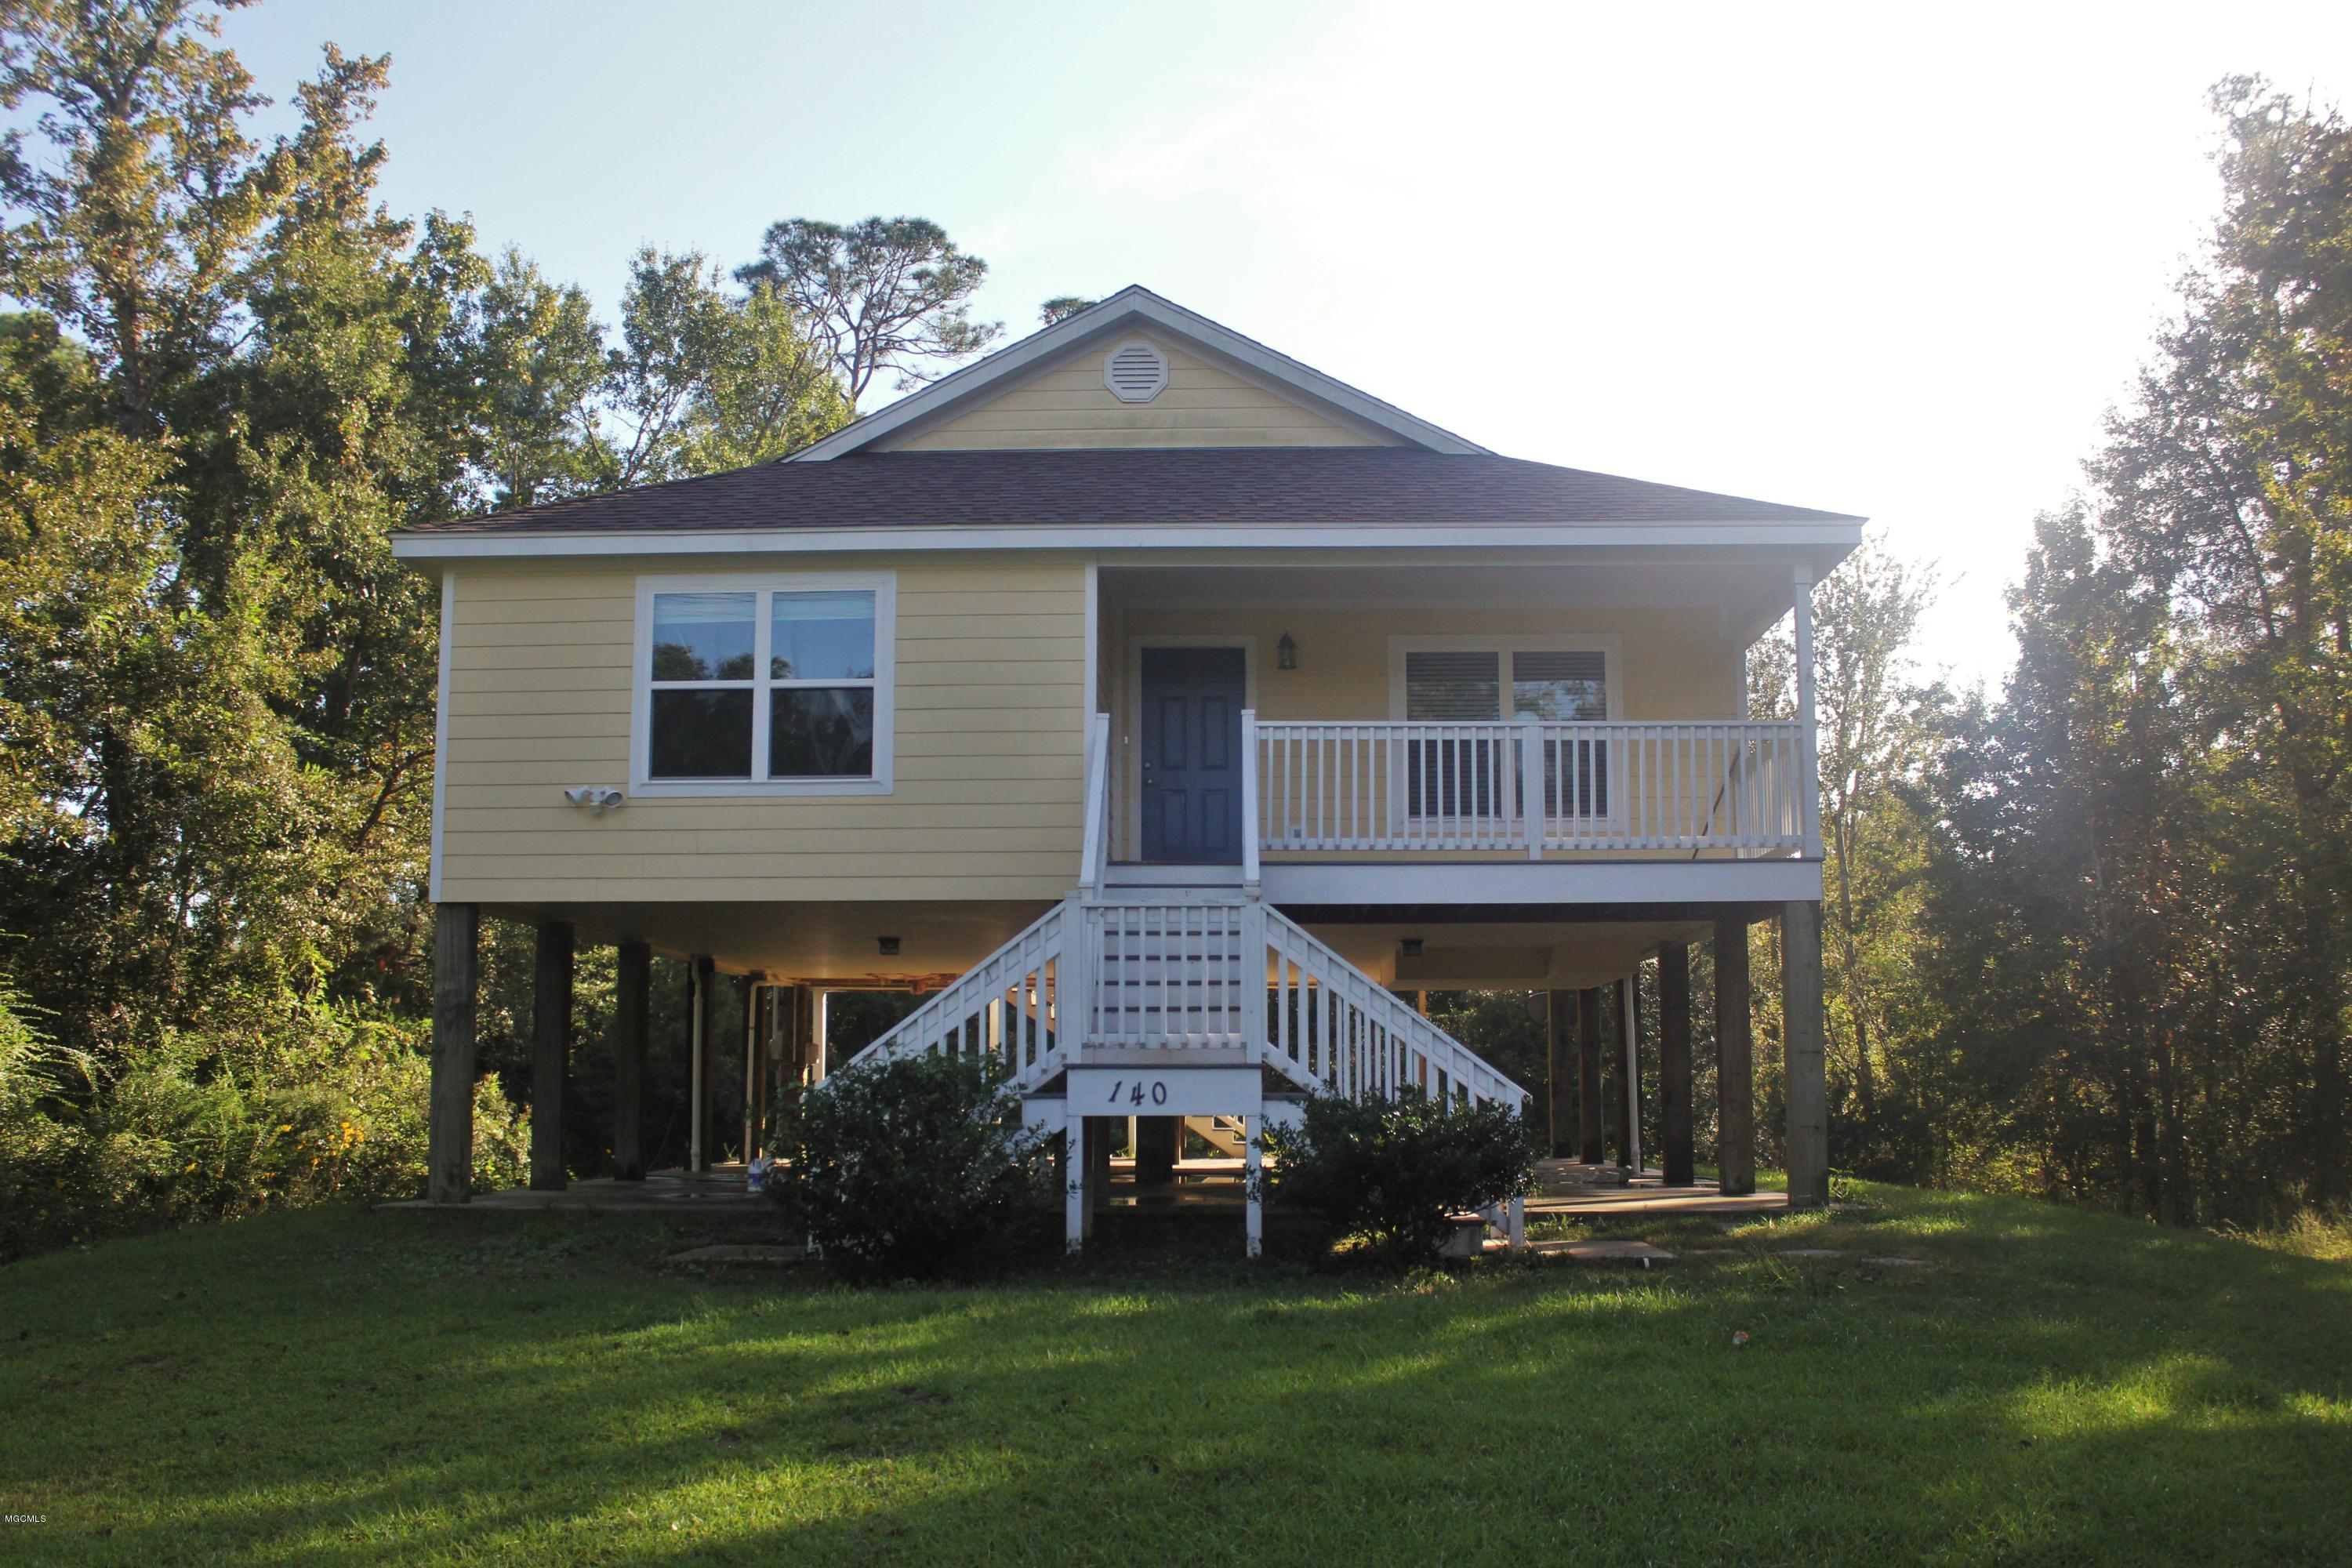 140 Felicity St,Bay St. Louis,Mississippi 39520,3 Bedrooms Bedrooms,2 BathroomsBathrooms,Rental,Felicity,340149